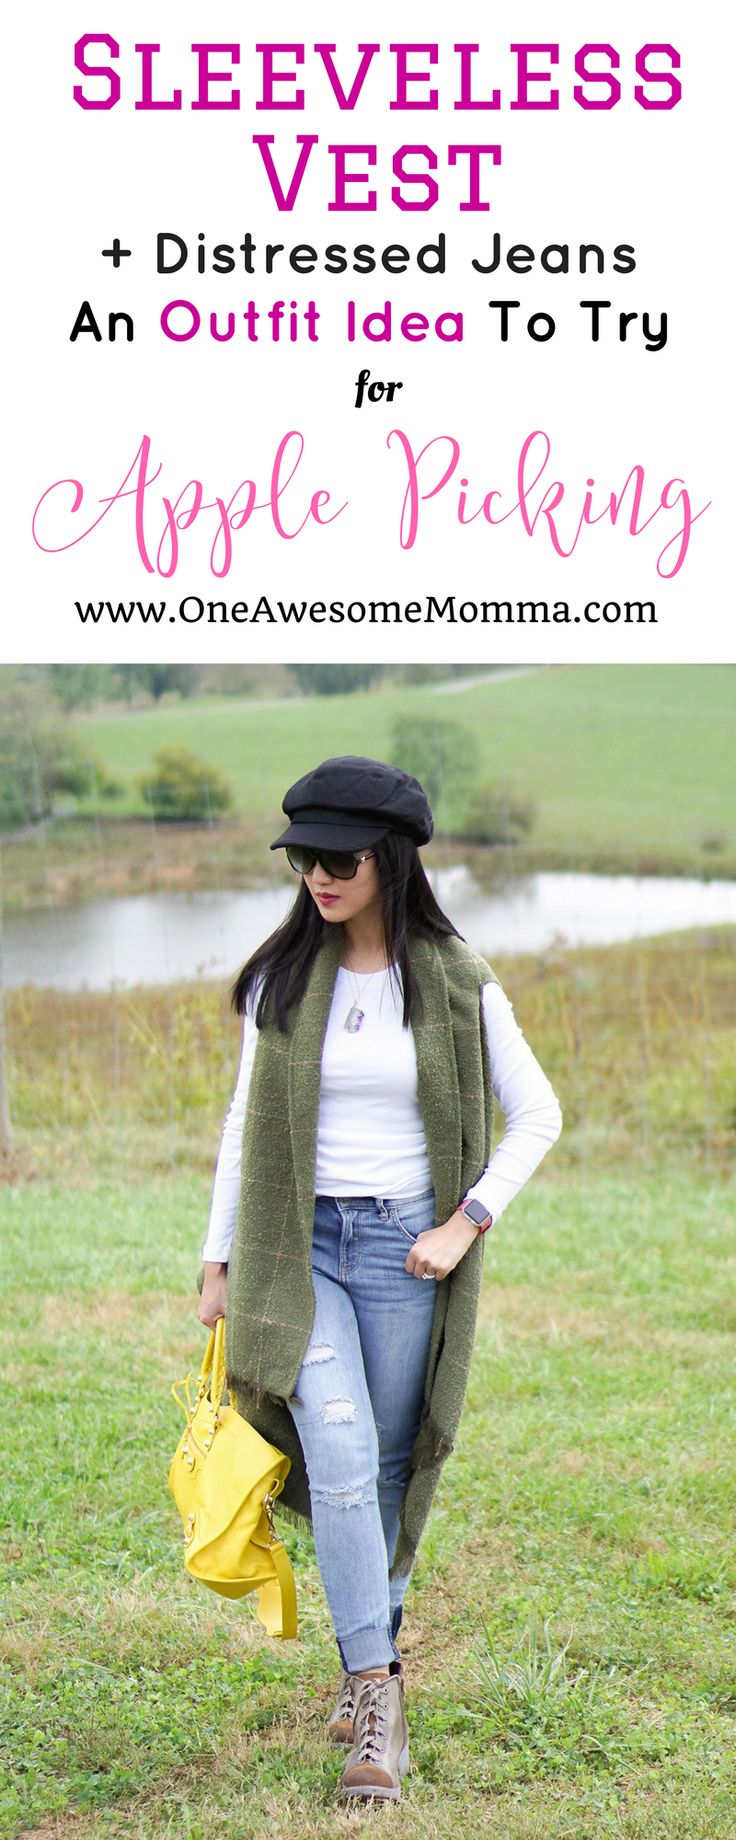 Going apple picking? Here's a cute apple picking outfit you must try. long sleeve tops, sleeveless vest, distressed jeans, laceup boots, newsboy hat, balenciaga city bag #falloutfit #fallstyle #applepicking | long sleeve top outfit | long sleeve tops fall | sleeveless vest fall | sleeveless vest outfit | sleeveless vest outfit fall | laceup boots outfit | newsboy hat outfit | casual fall outfits | fall fashion | street style fall | balenciaga bag | distressed jeans outfit